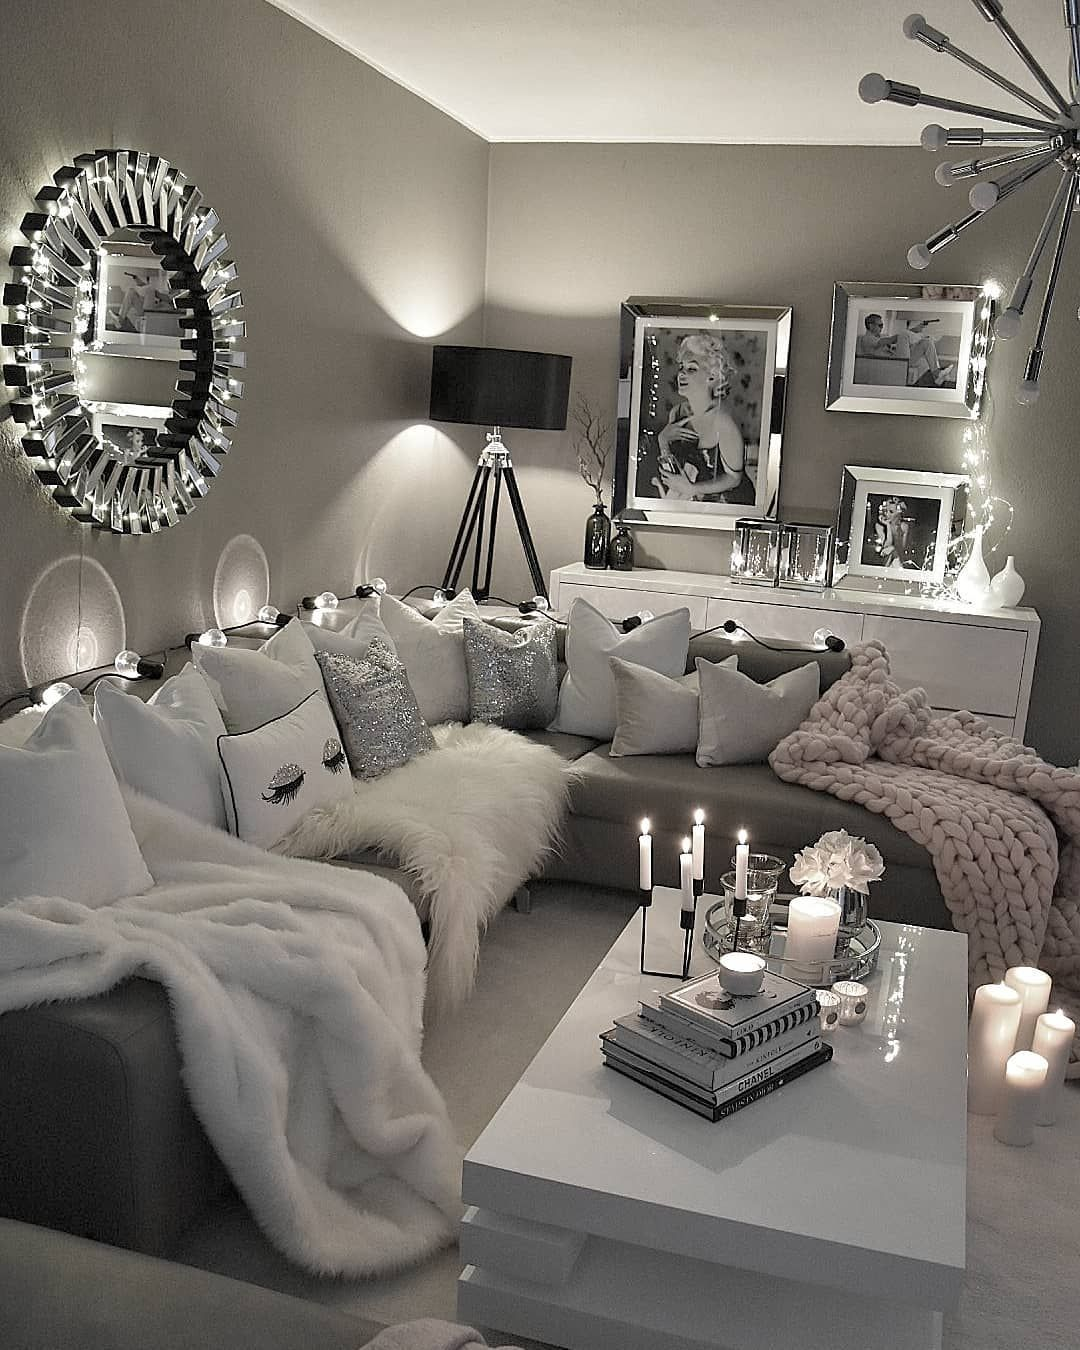 pin von jennifer liccion auf living room pinterest wohnzimmer schlafzimmer und haus. Black Bedroom Furniture Sets. Home Design Ideas